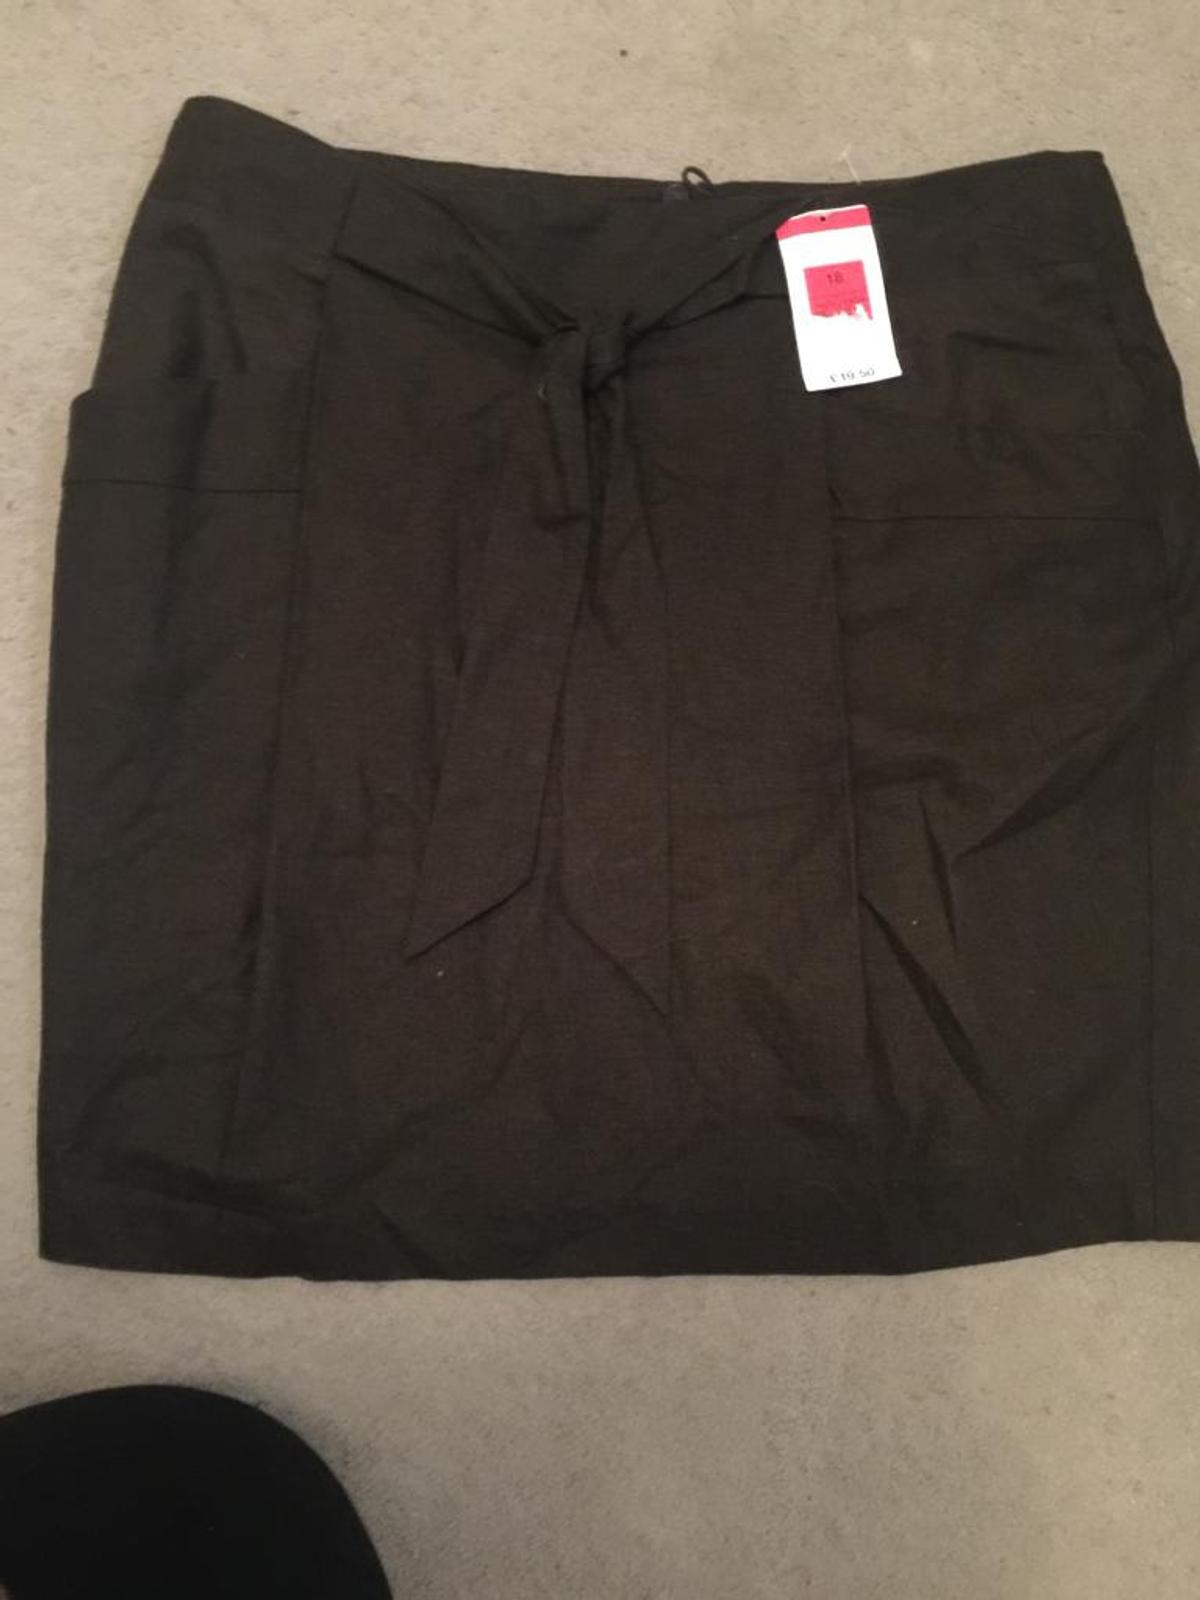 new with tags m&s ladies linen skirt